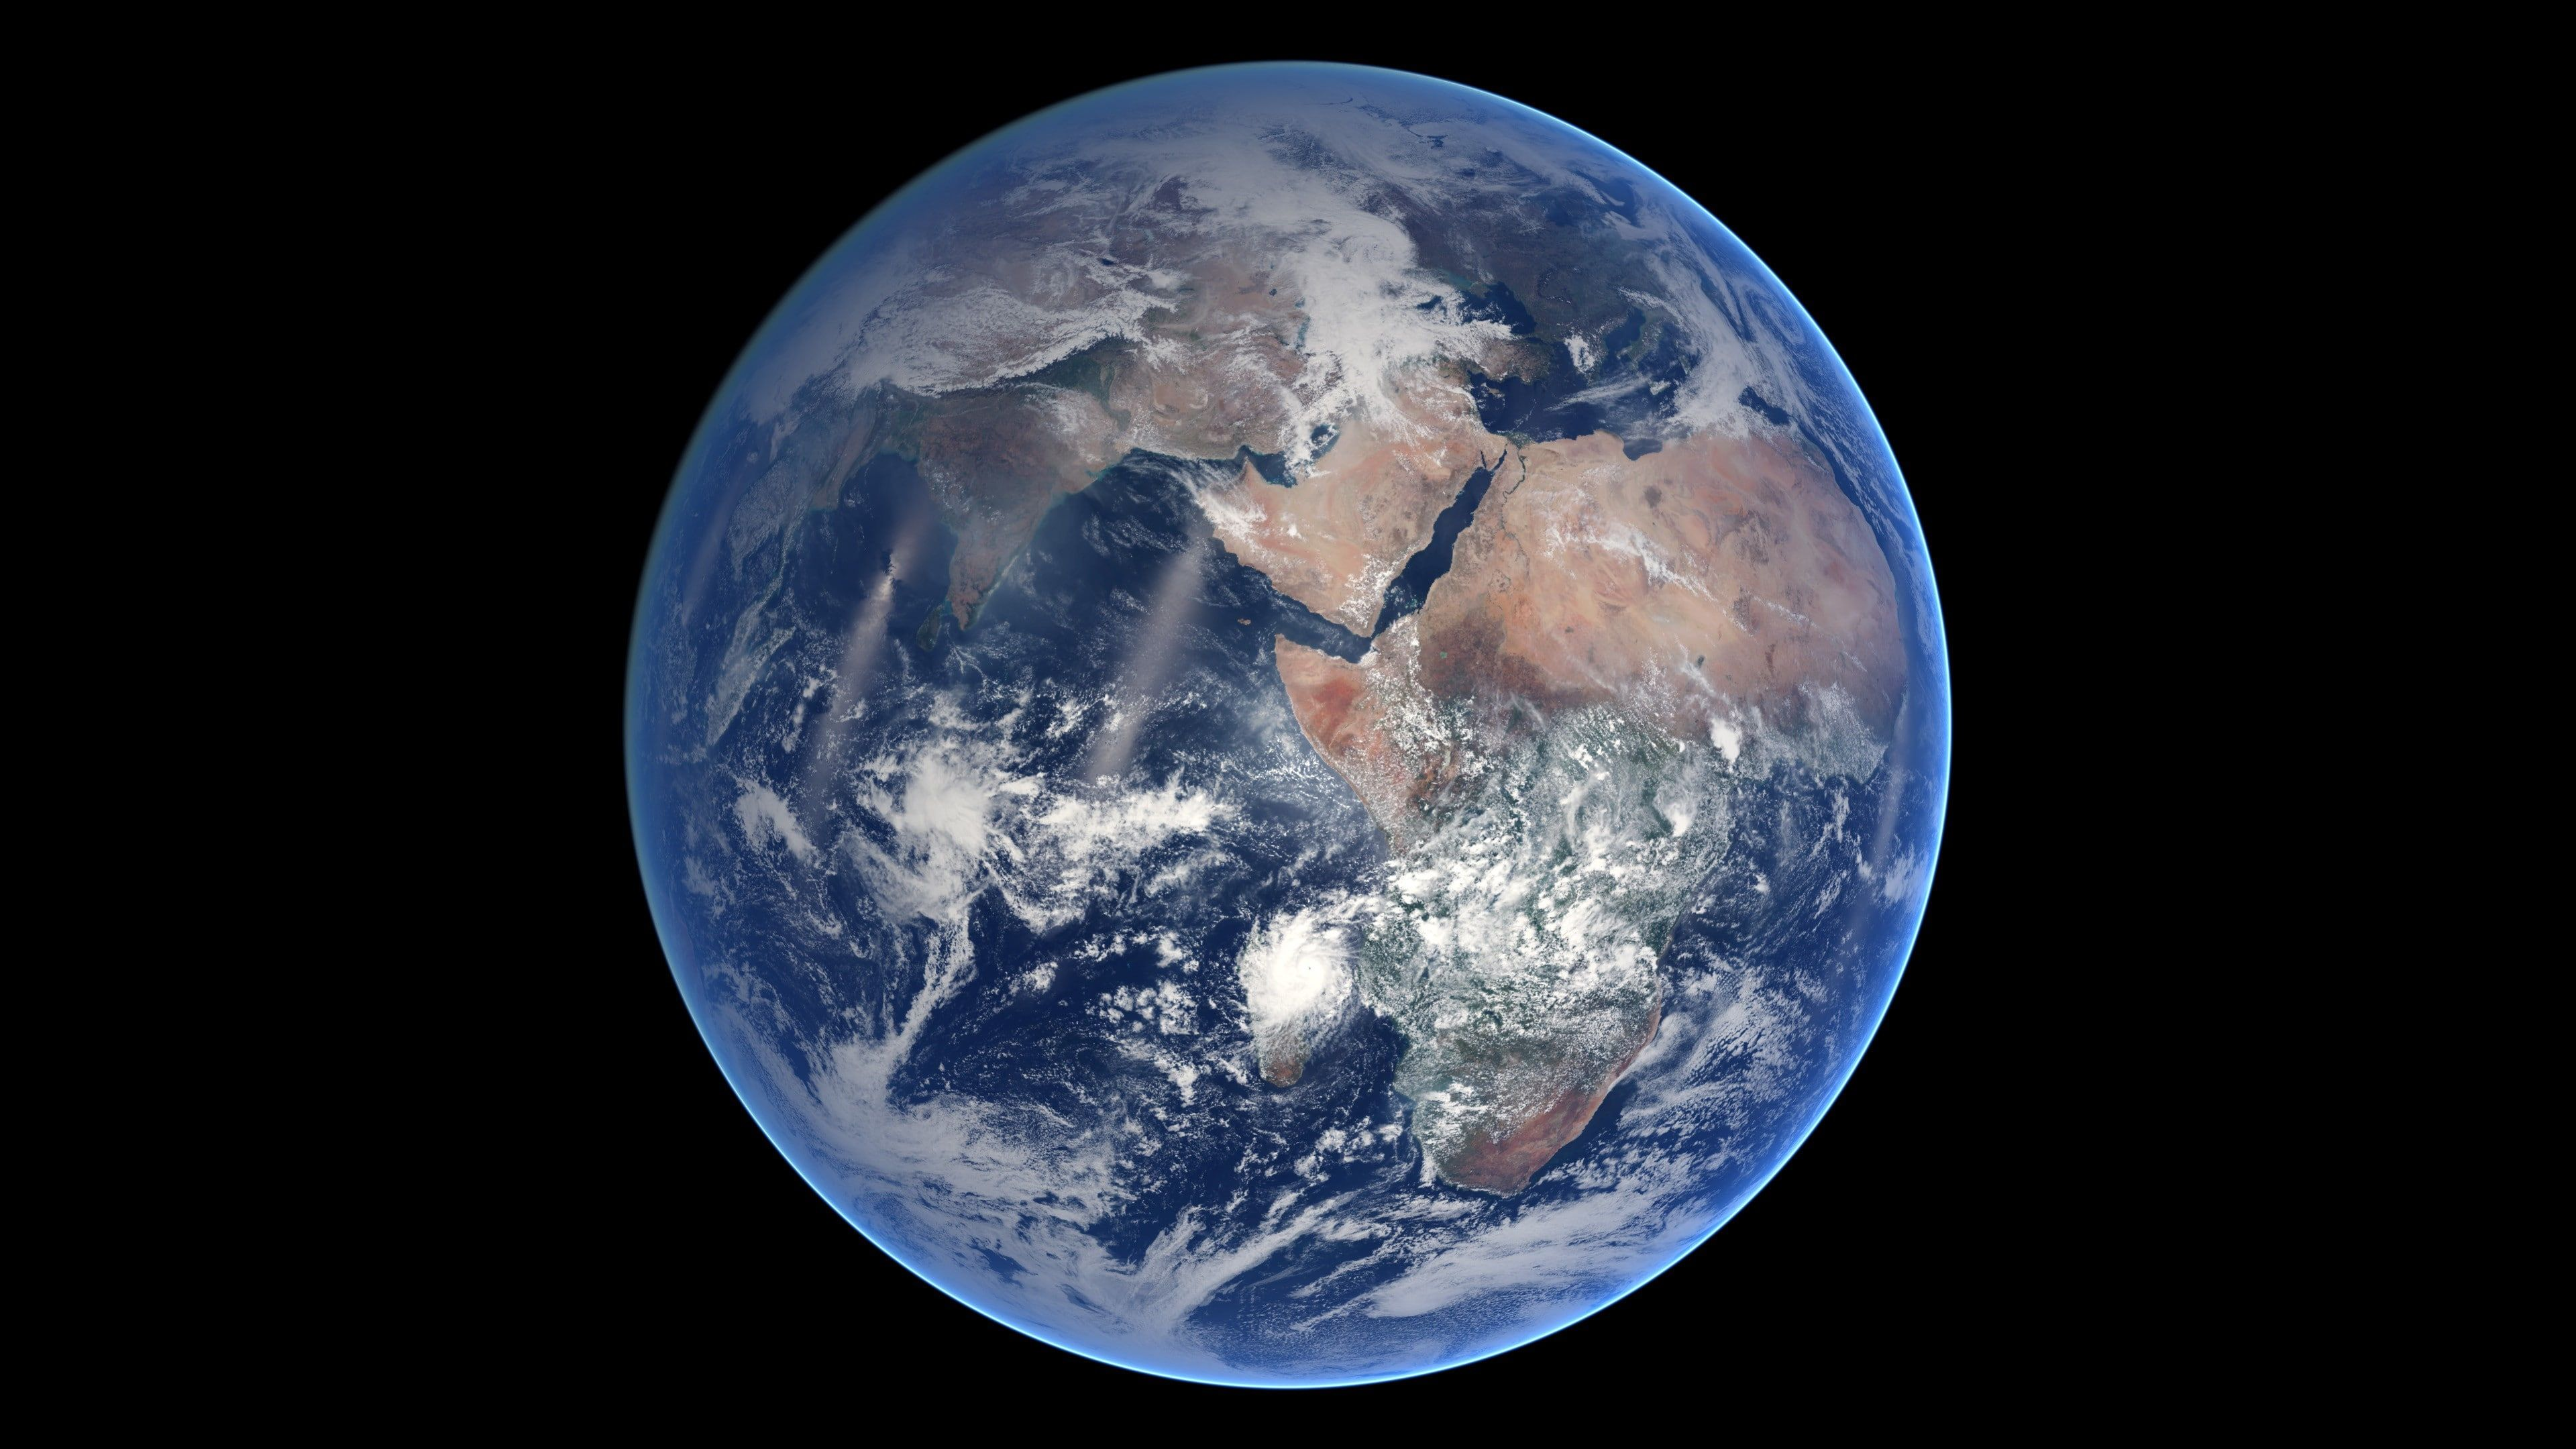 Earth Space Planet Blue Marble Nasa 4k Wallpaper Hdwallpaper Desktop Earth From Space Nasa Earth Planets